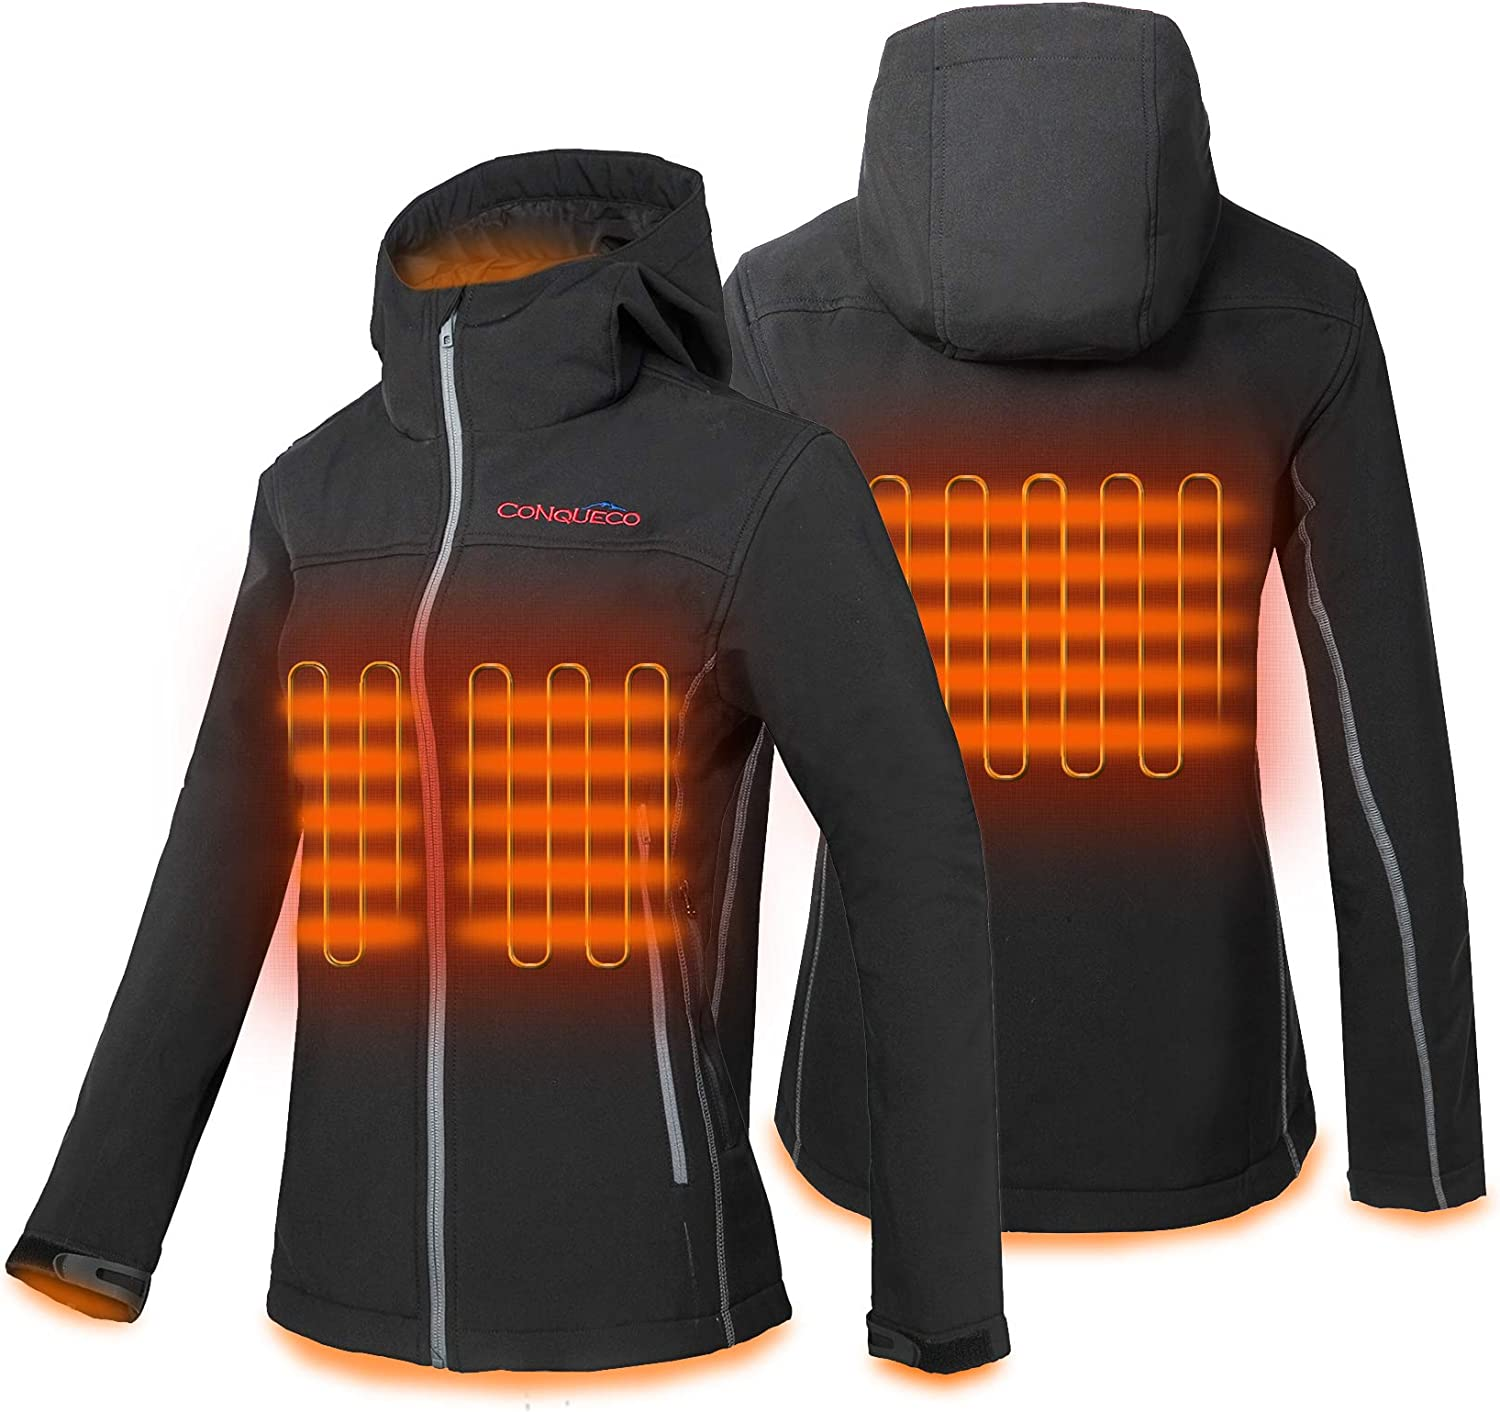 CONQUECO Women's Heated Jacket Slim Fit Electric Hoodie Jacket in Winter: Clothing